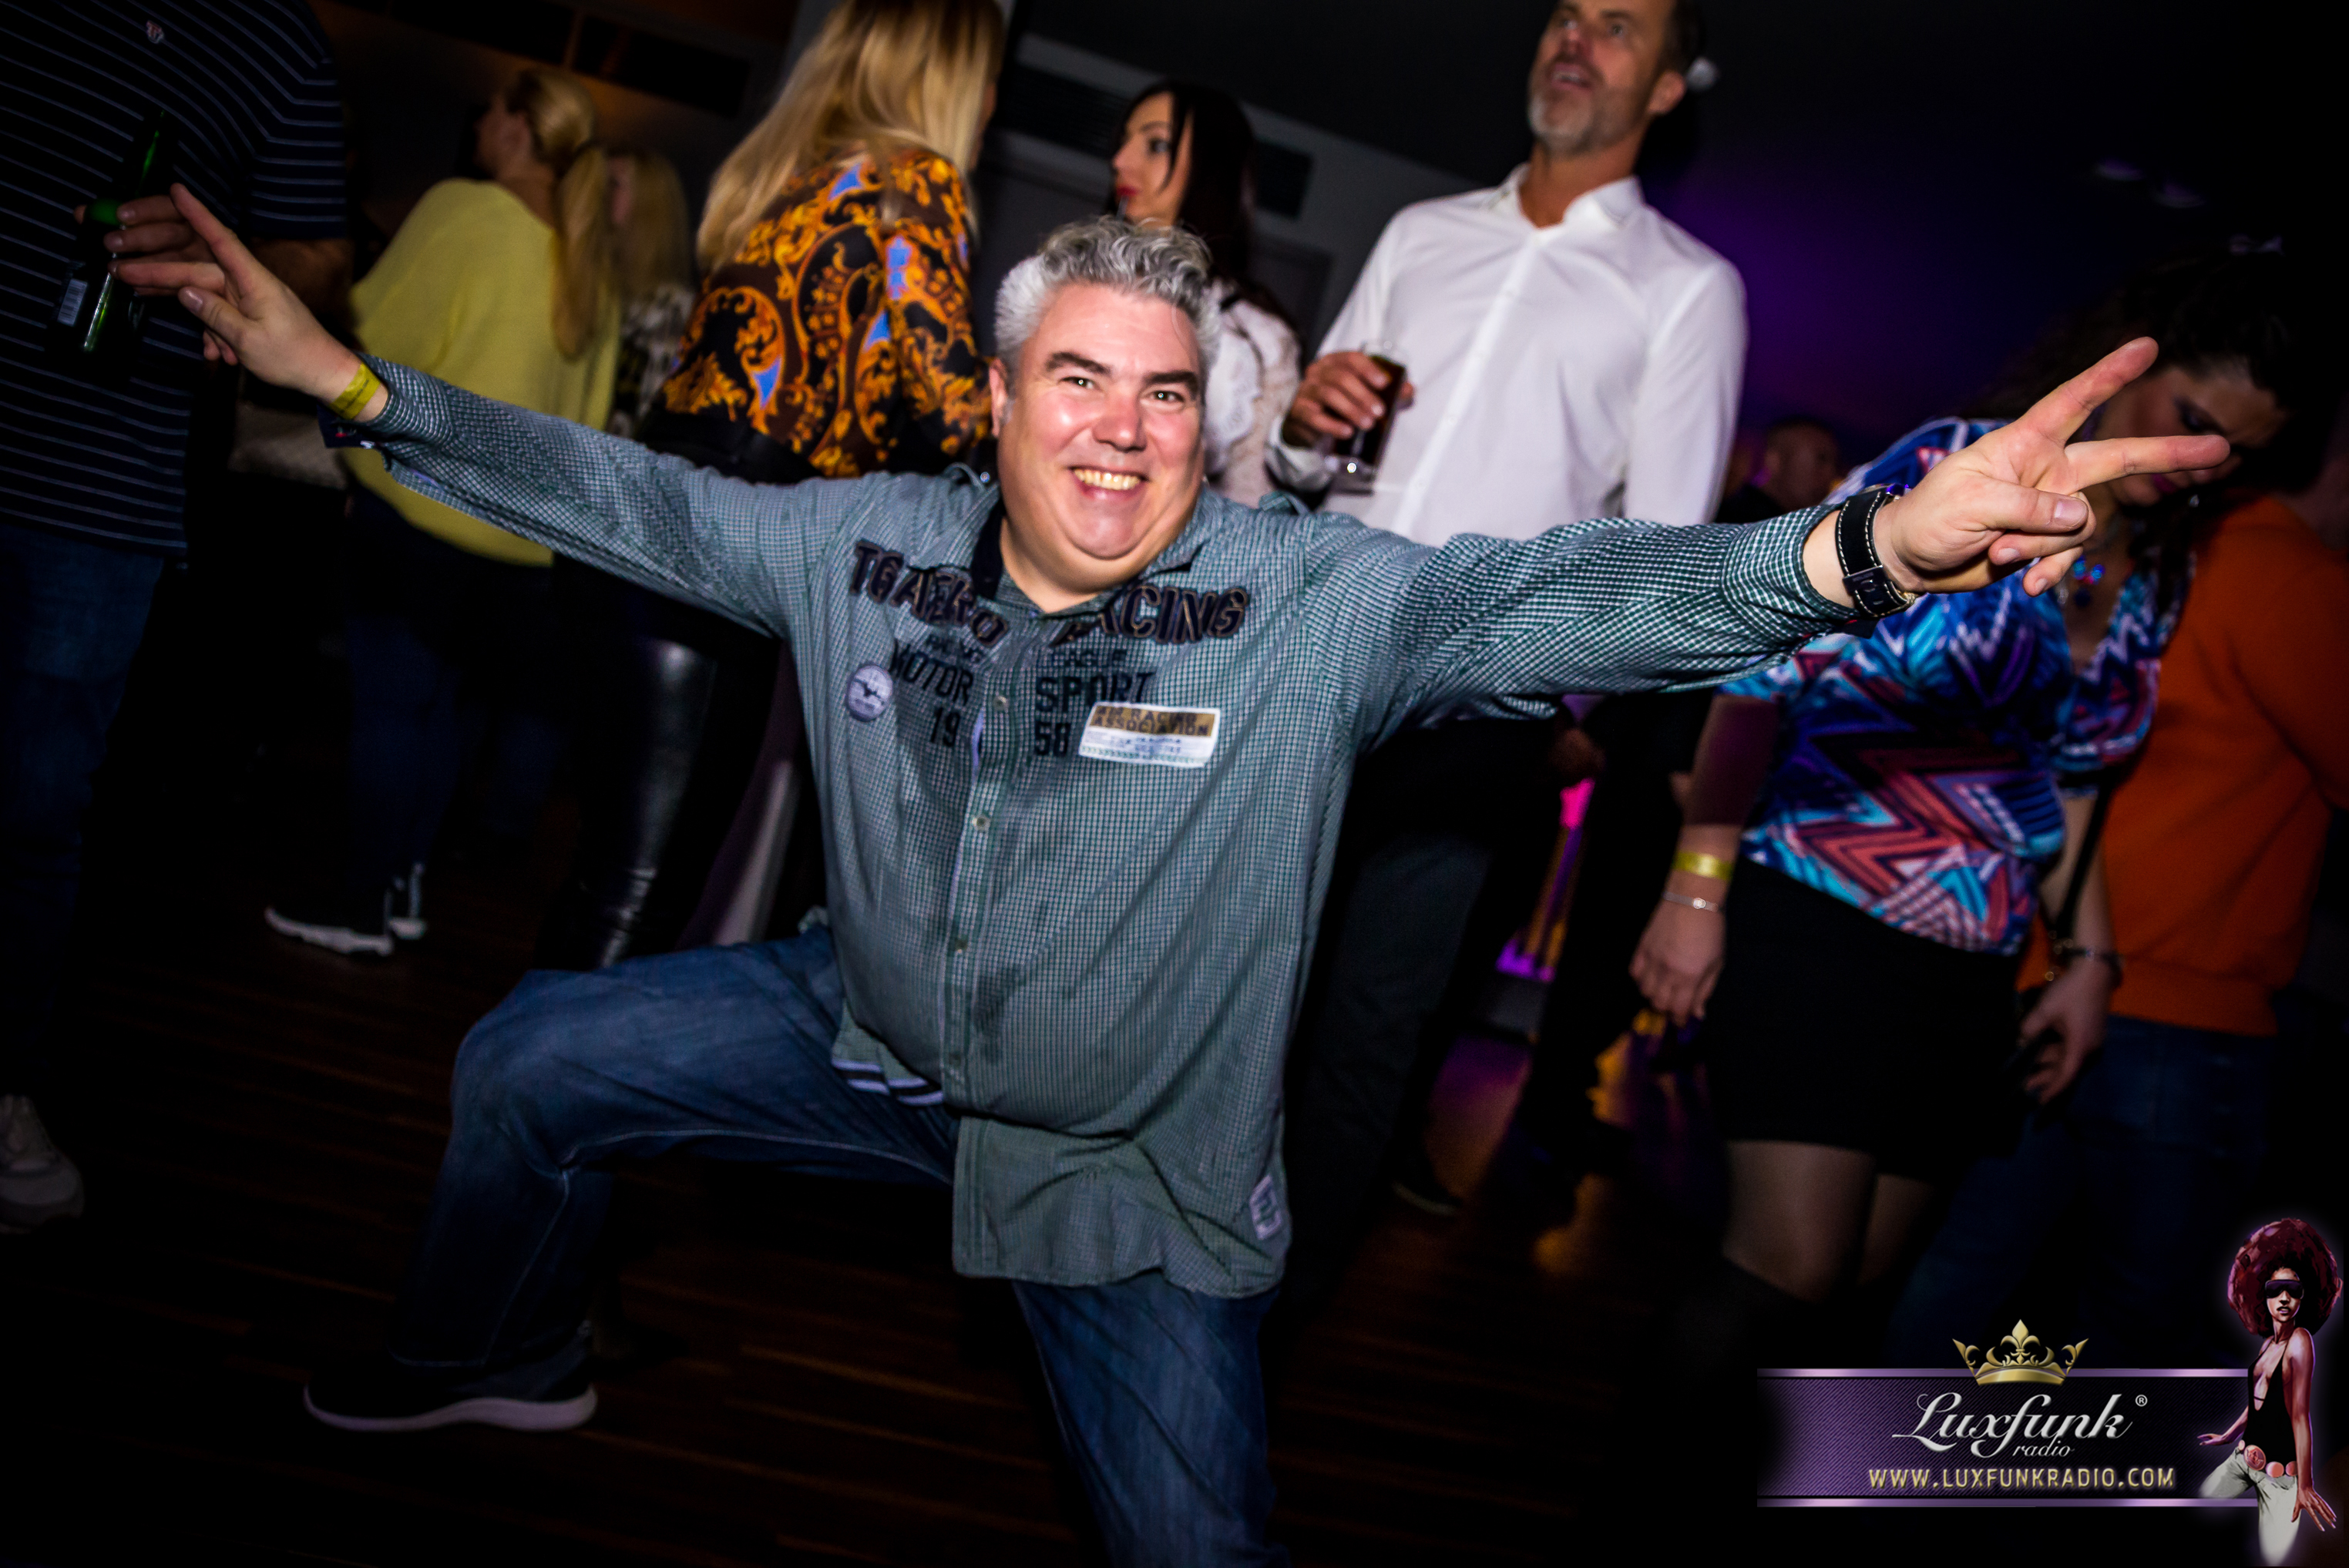 luxfunk-radio-funky-party-20191108-lock-budapest-1323